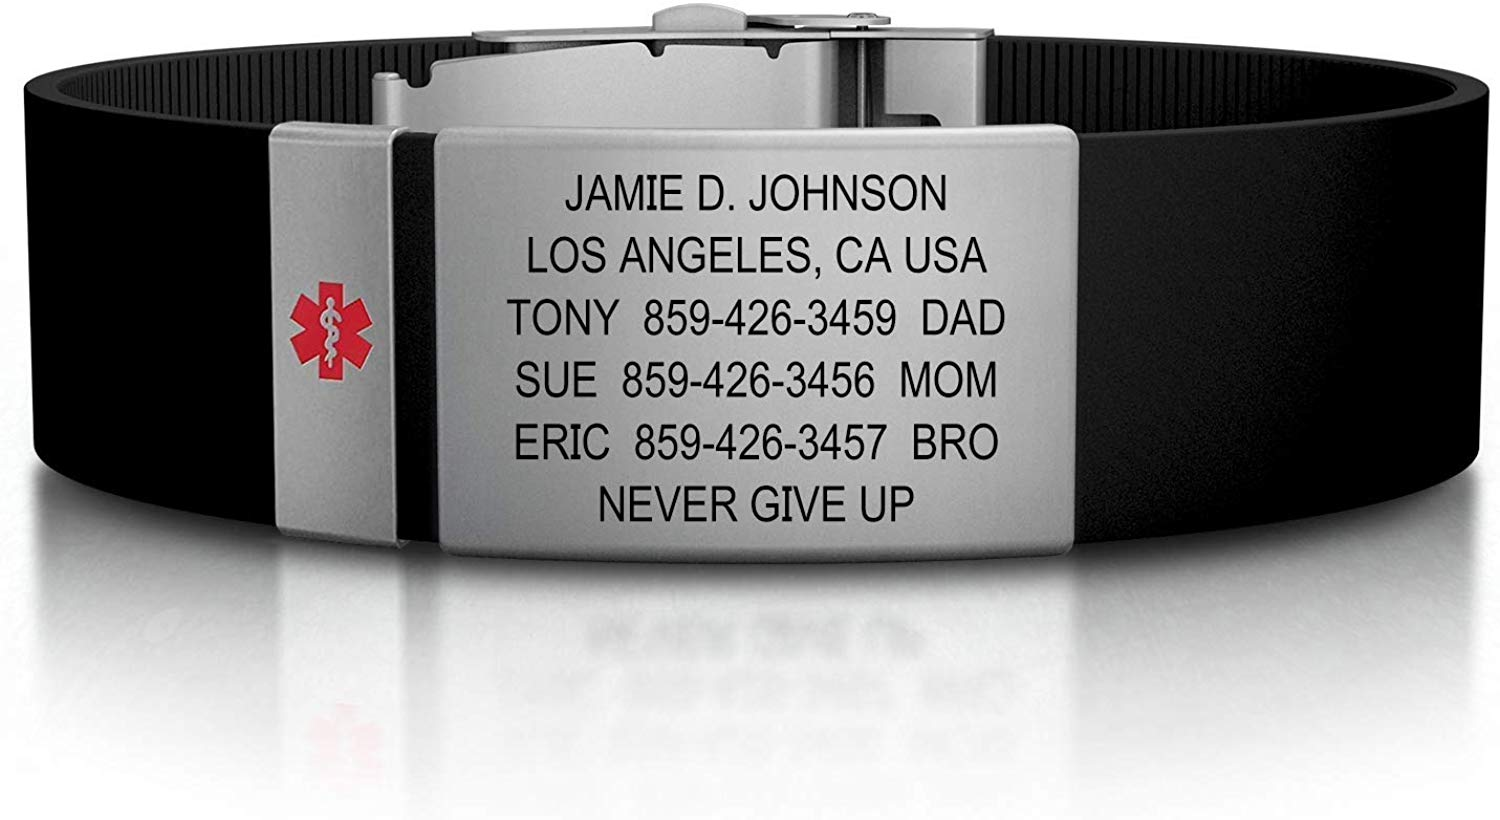 Review of Road ID Medical Alert Bracelet - Official ID Wristband with Medical Alert Badge - Silicone Clasp